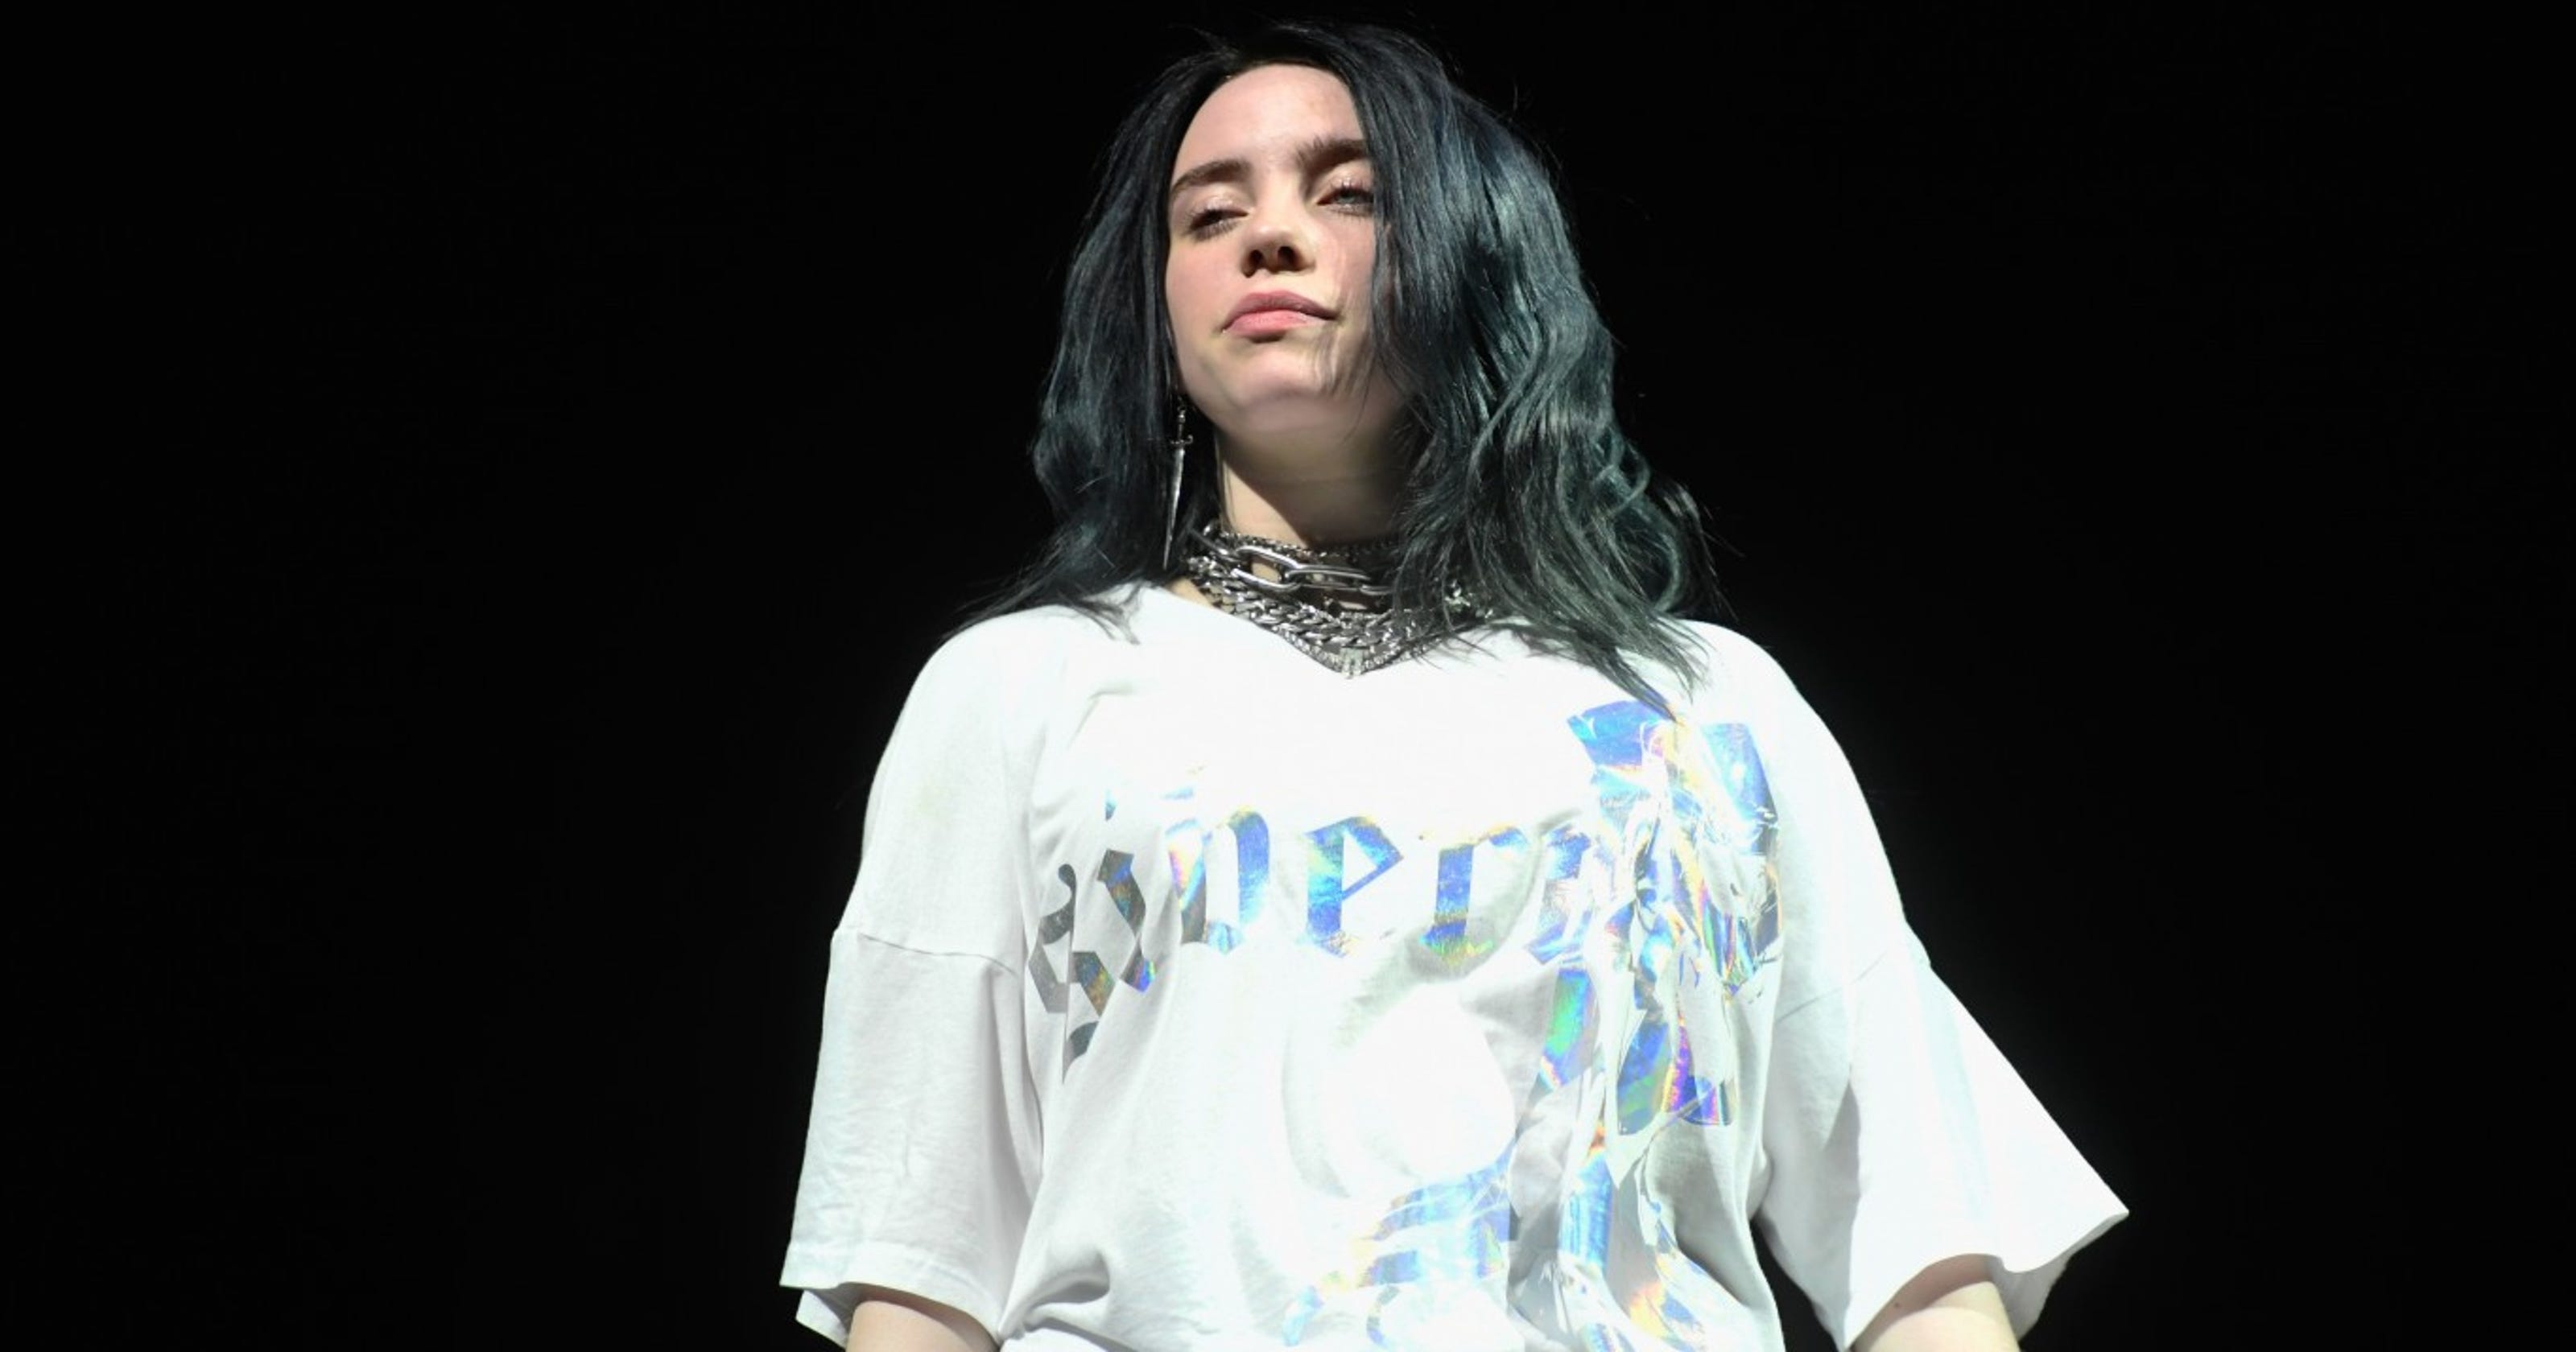 Billie Eilish opens up about mental health: 'I didn't think that I would even make it' to 17